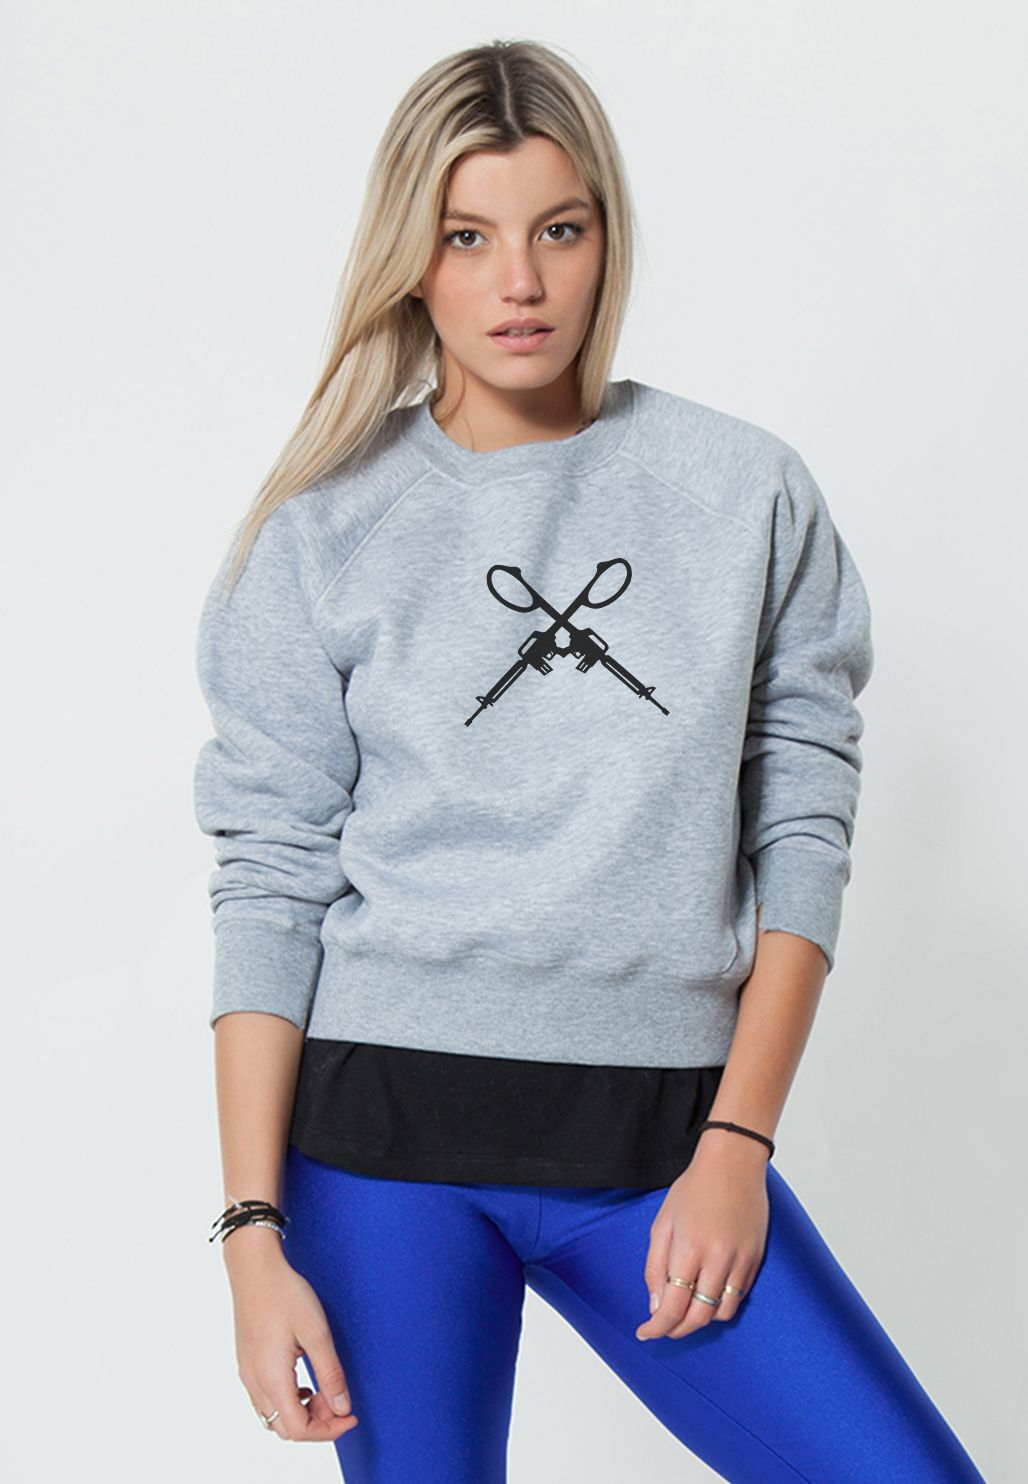 Guns Sweater